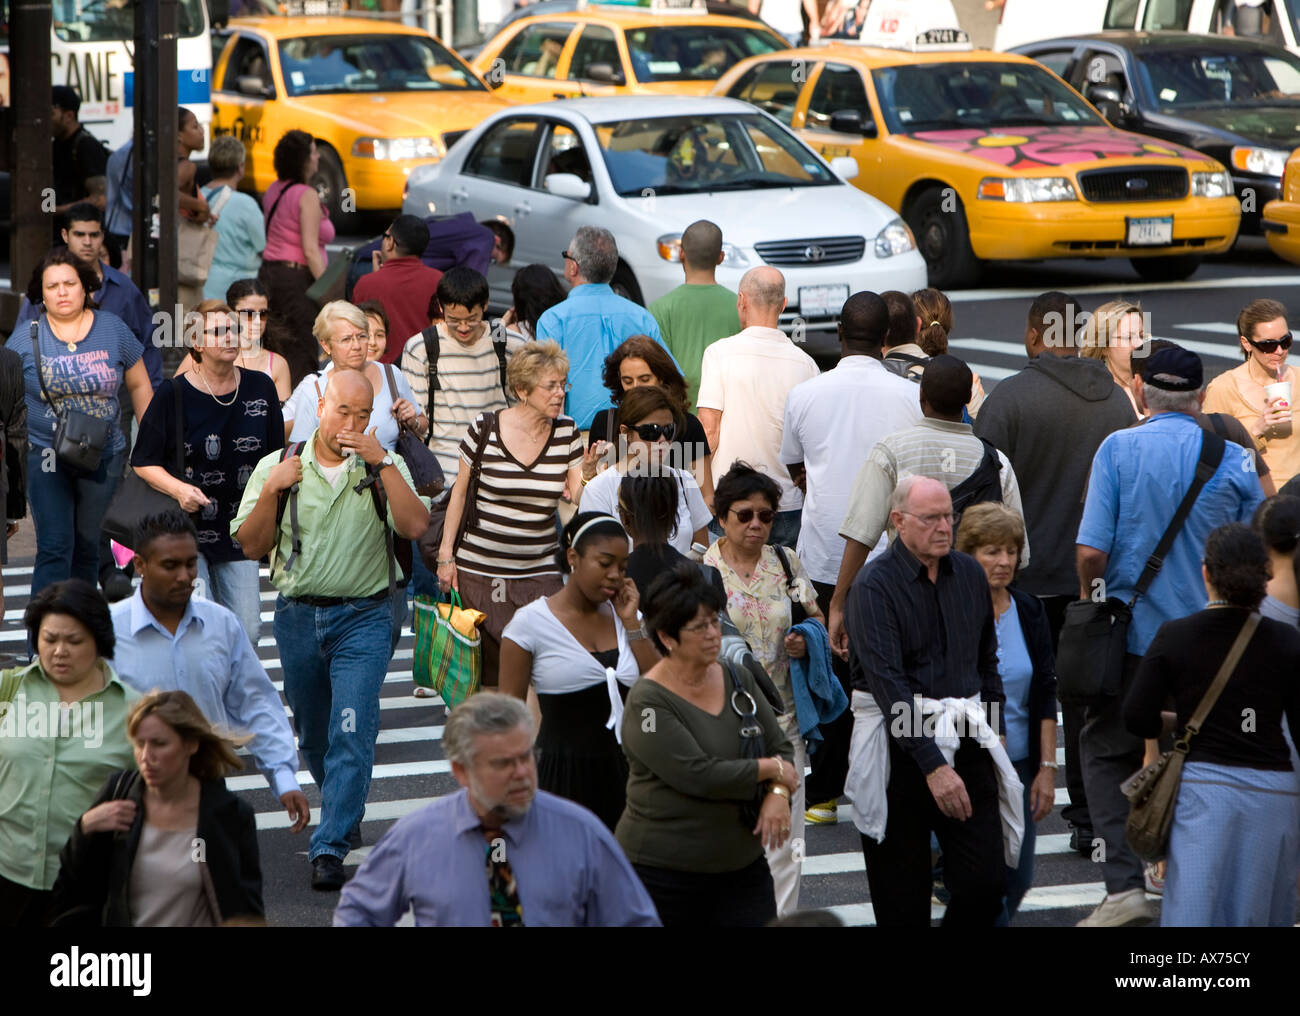 42nd Street and Fifth Avenue is constantly clogged with pedestrians in New York City. - Stock Image